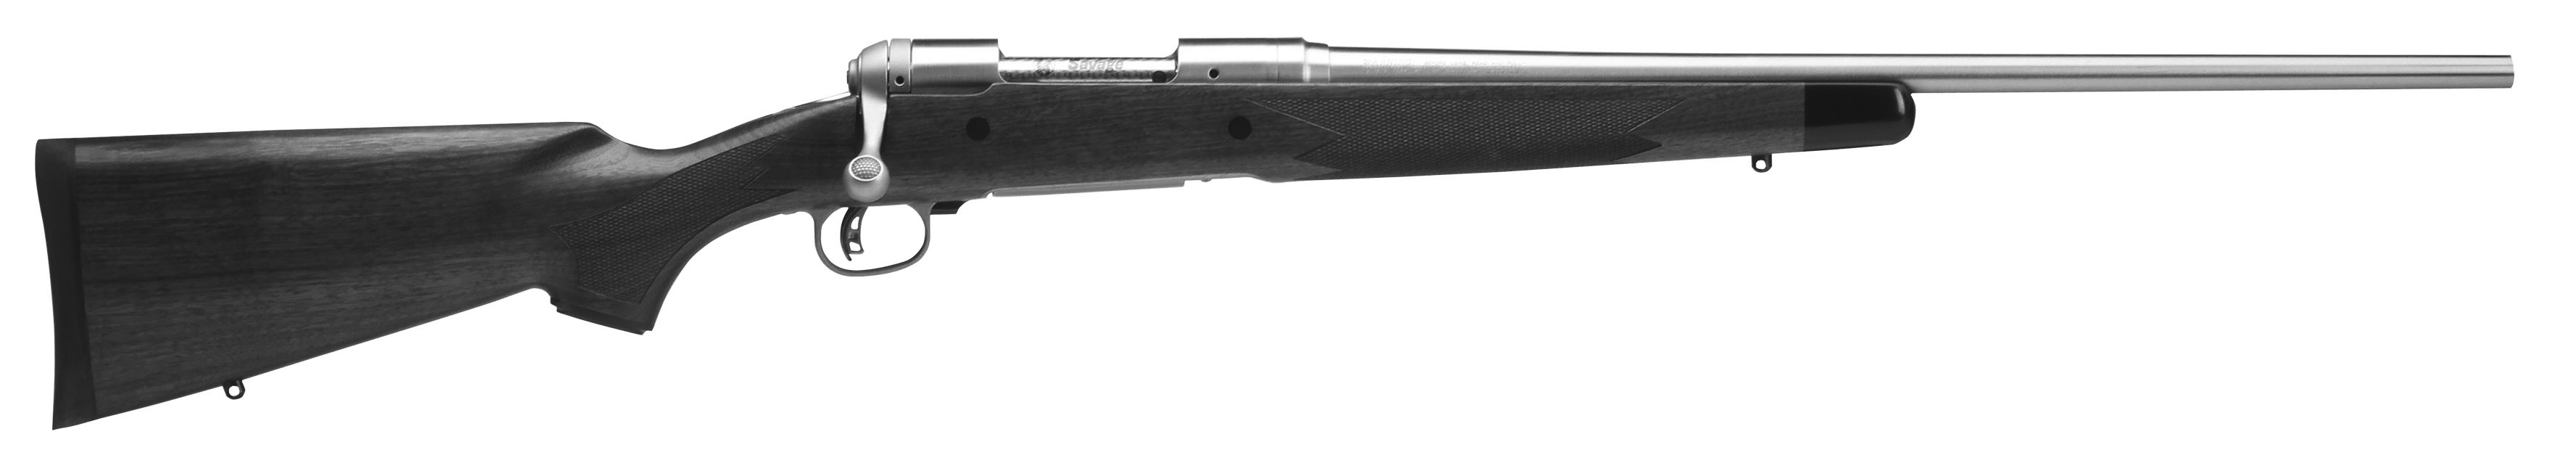 Model 14 / 114 American Classic Stainless